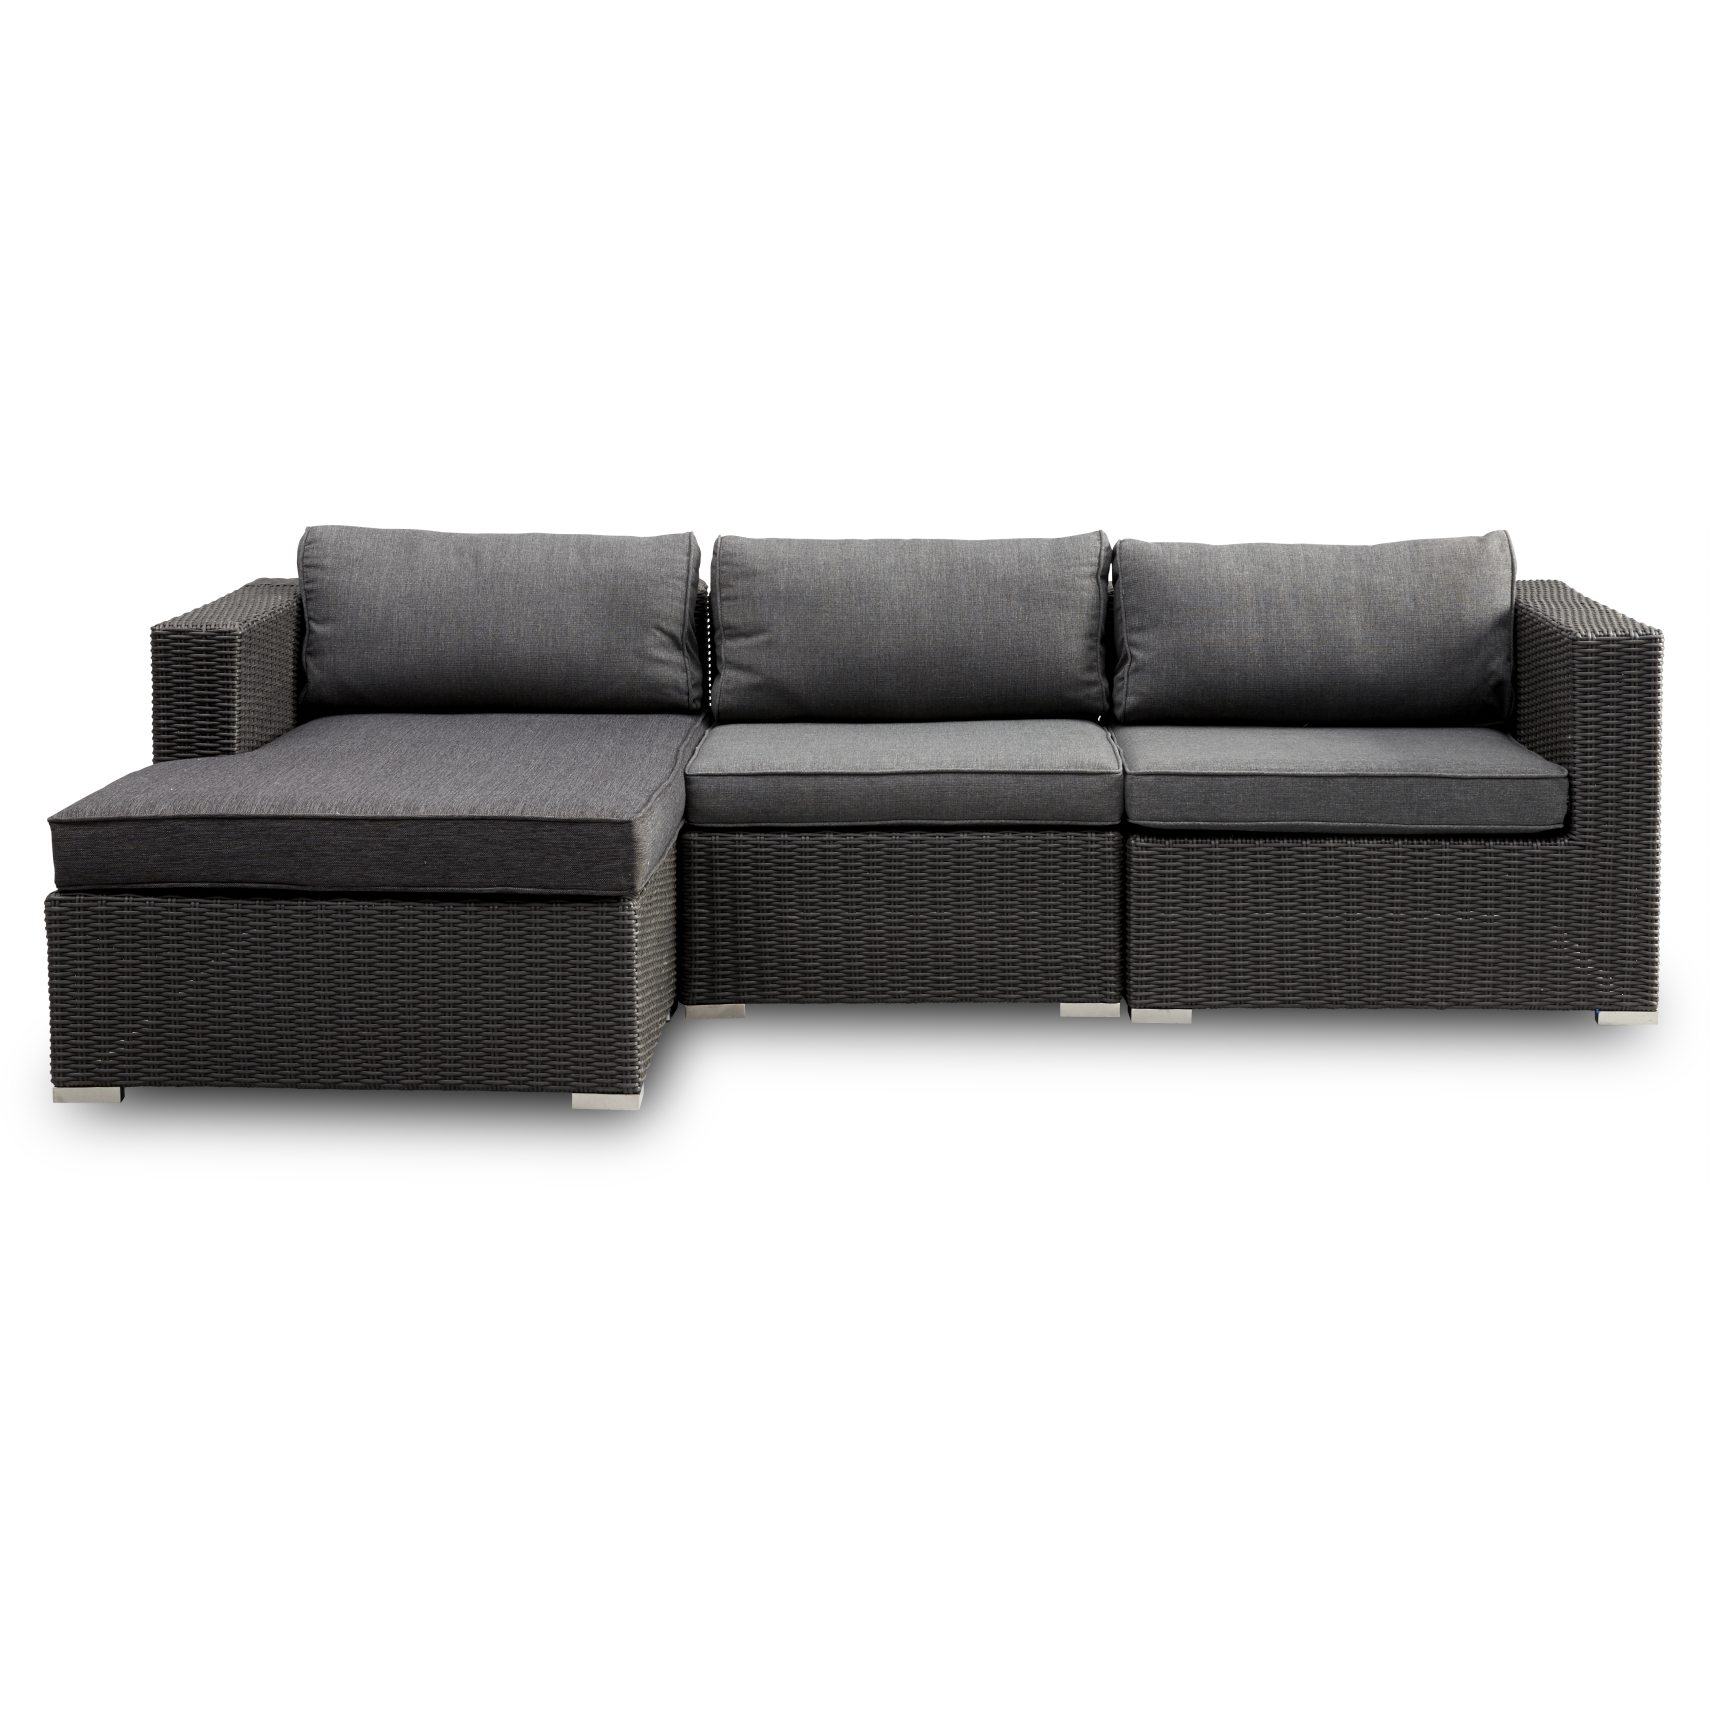 Avignon Loungesofa med chaiselong - Loungesofa med chaiselong